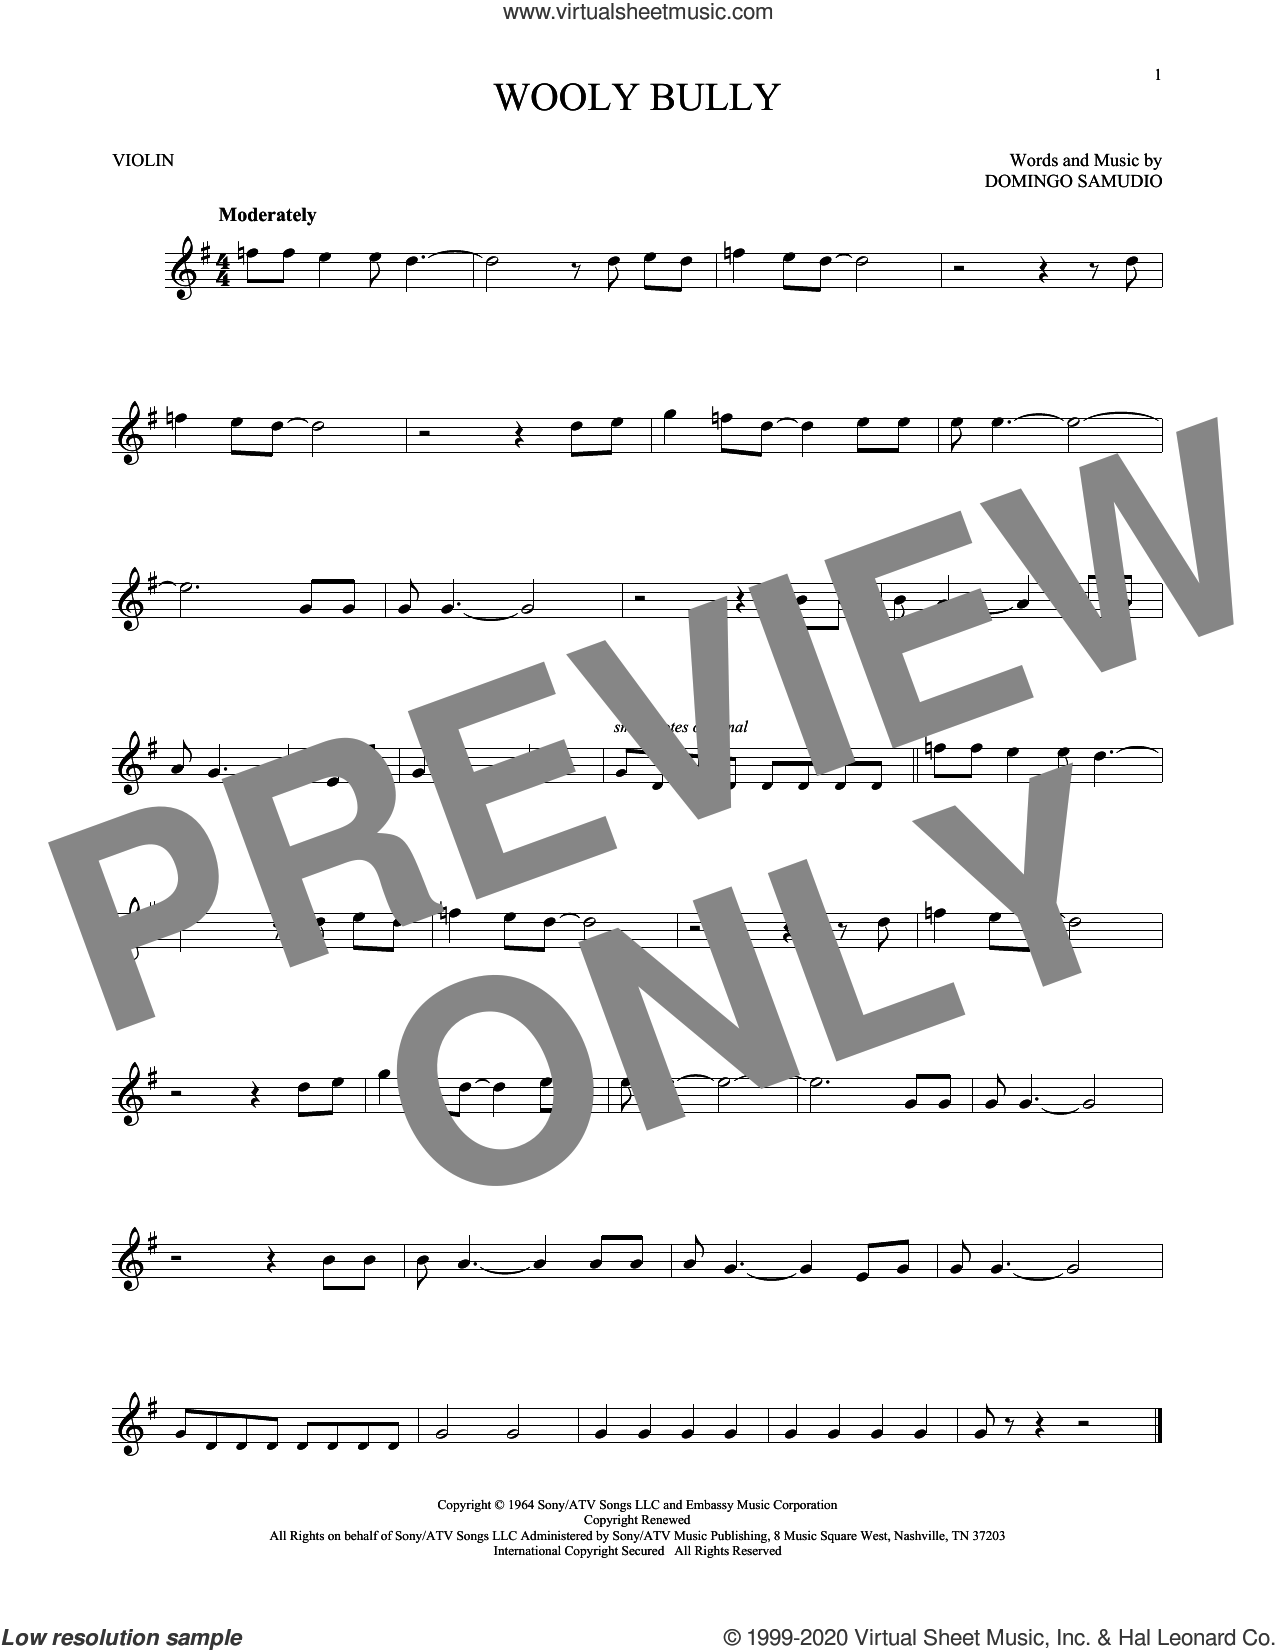 Wooly Bully sheet music for violin solo by Sam The Sham & The Pharaohs and Domingo Samudio, intermediate skill level